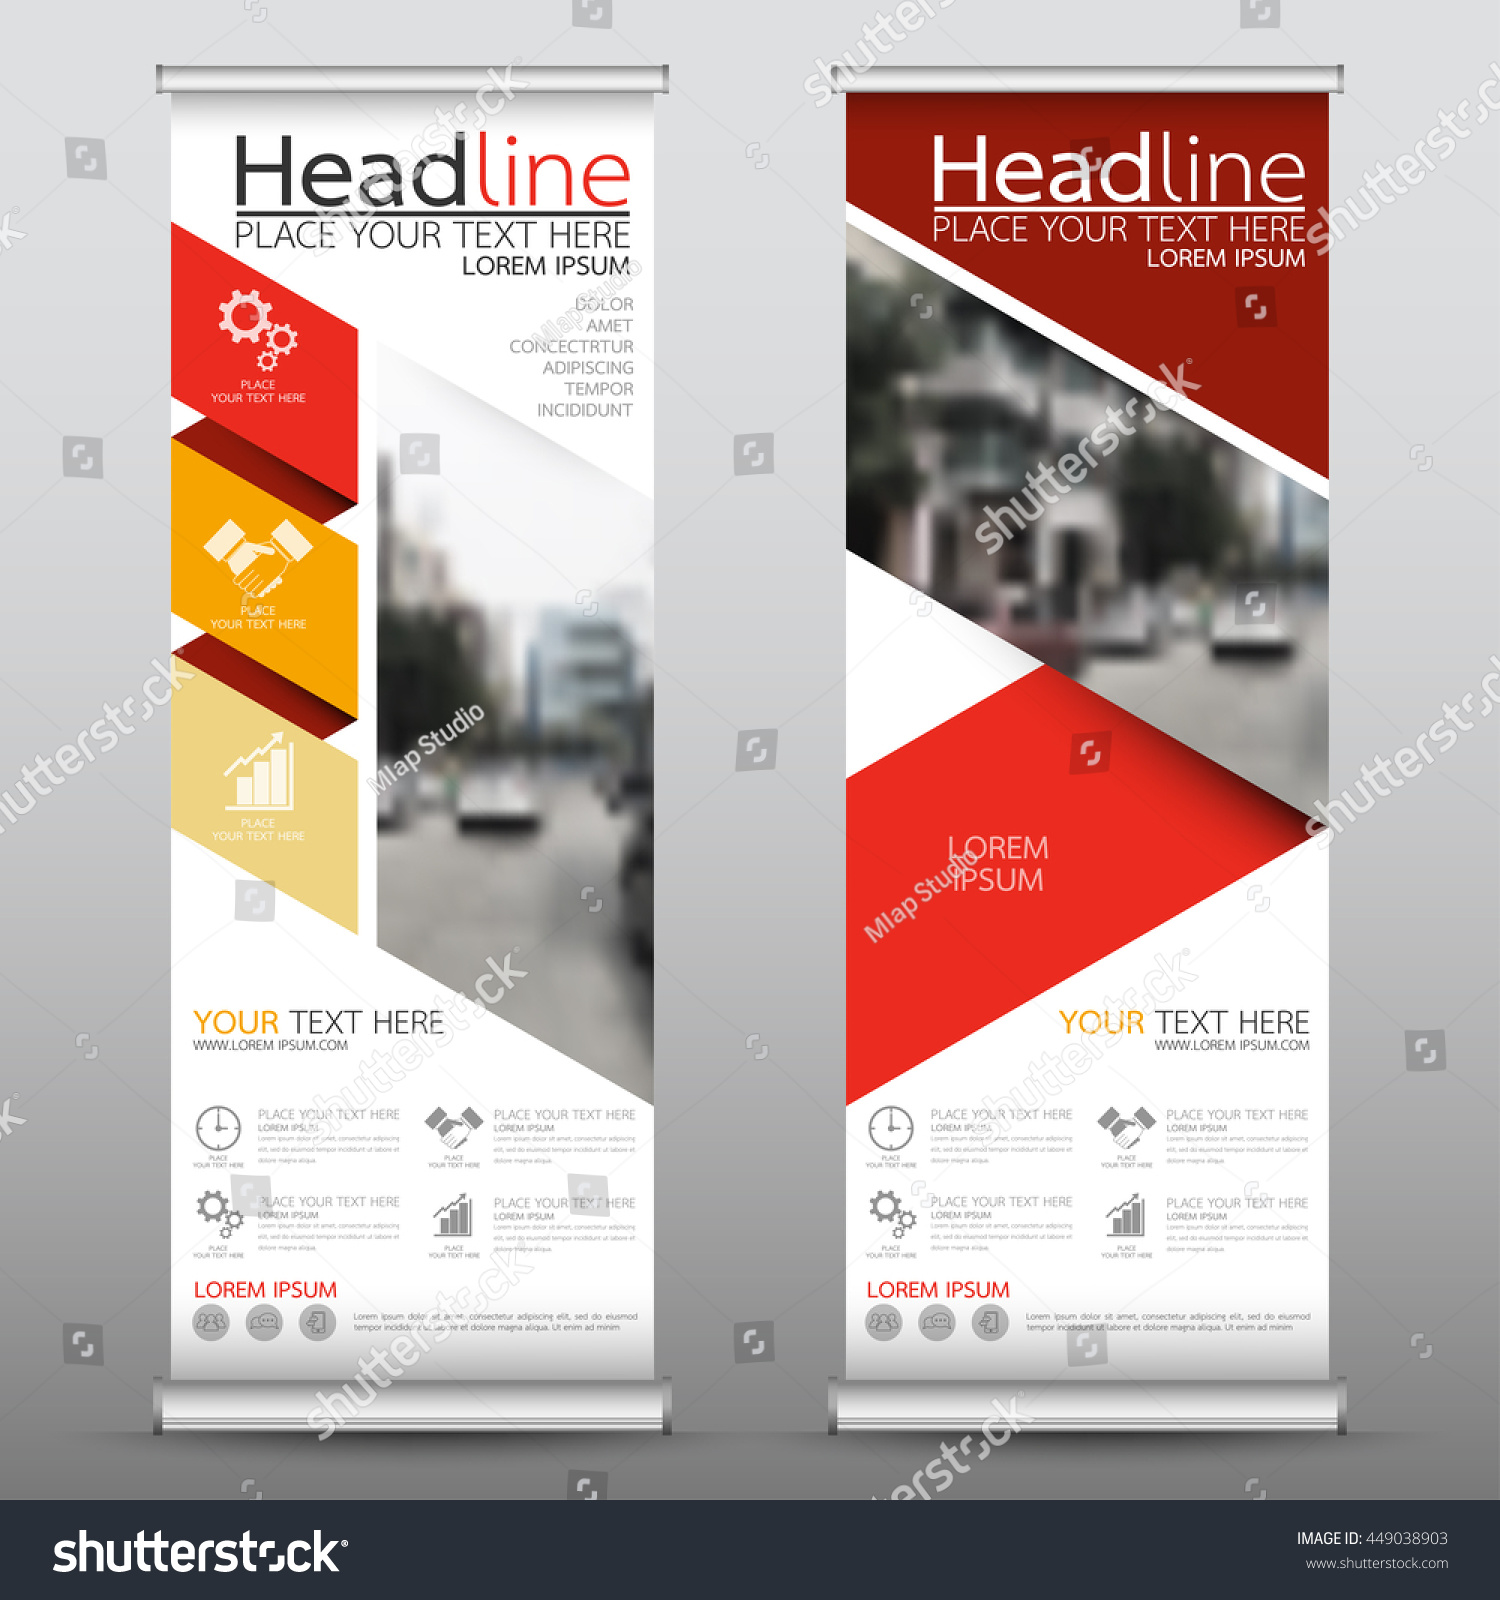 Green roll up business brochure flyer banner design vertical template - Red Roll Up Business Brochure Flyer Banner Design Vertical Template Vector Cover Presentation Abstract Geometric